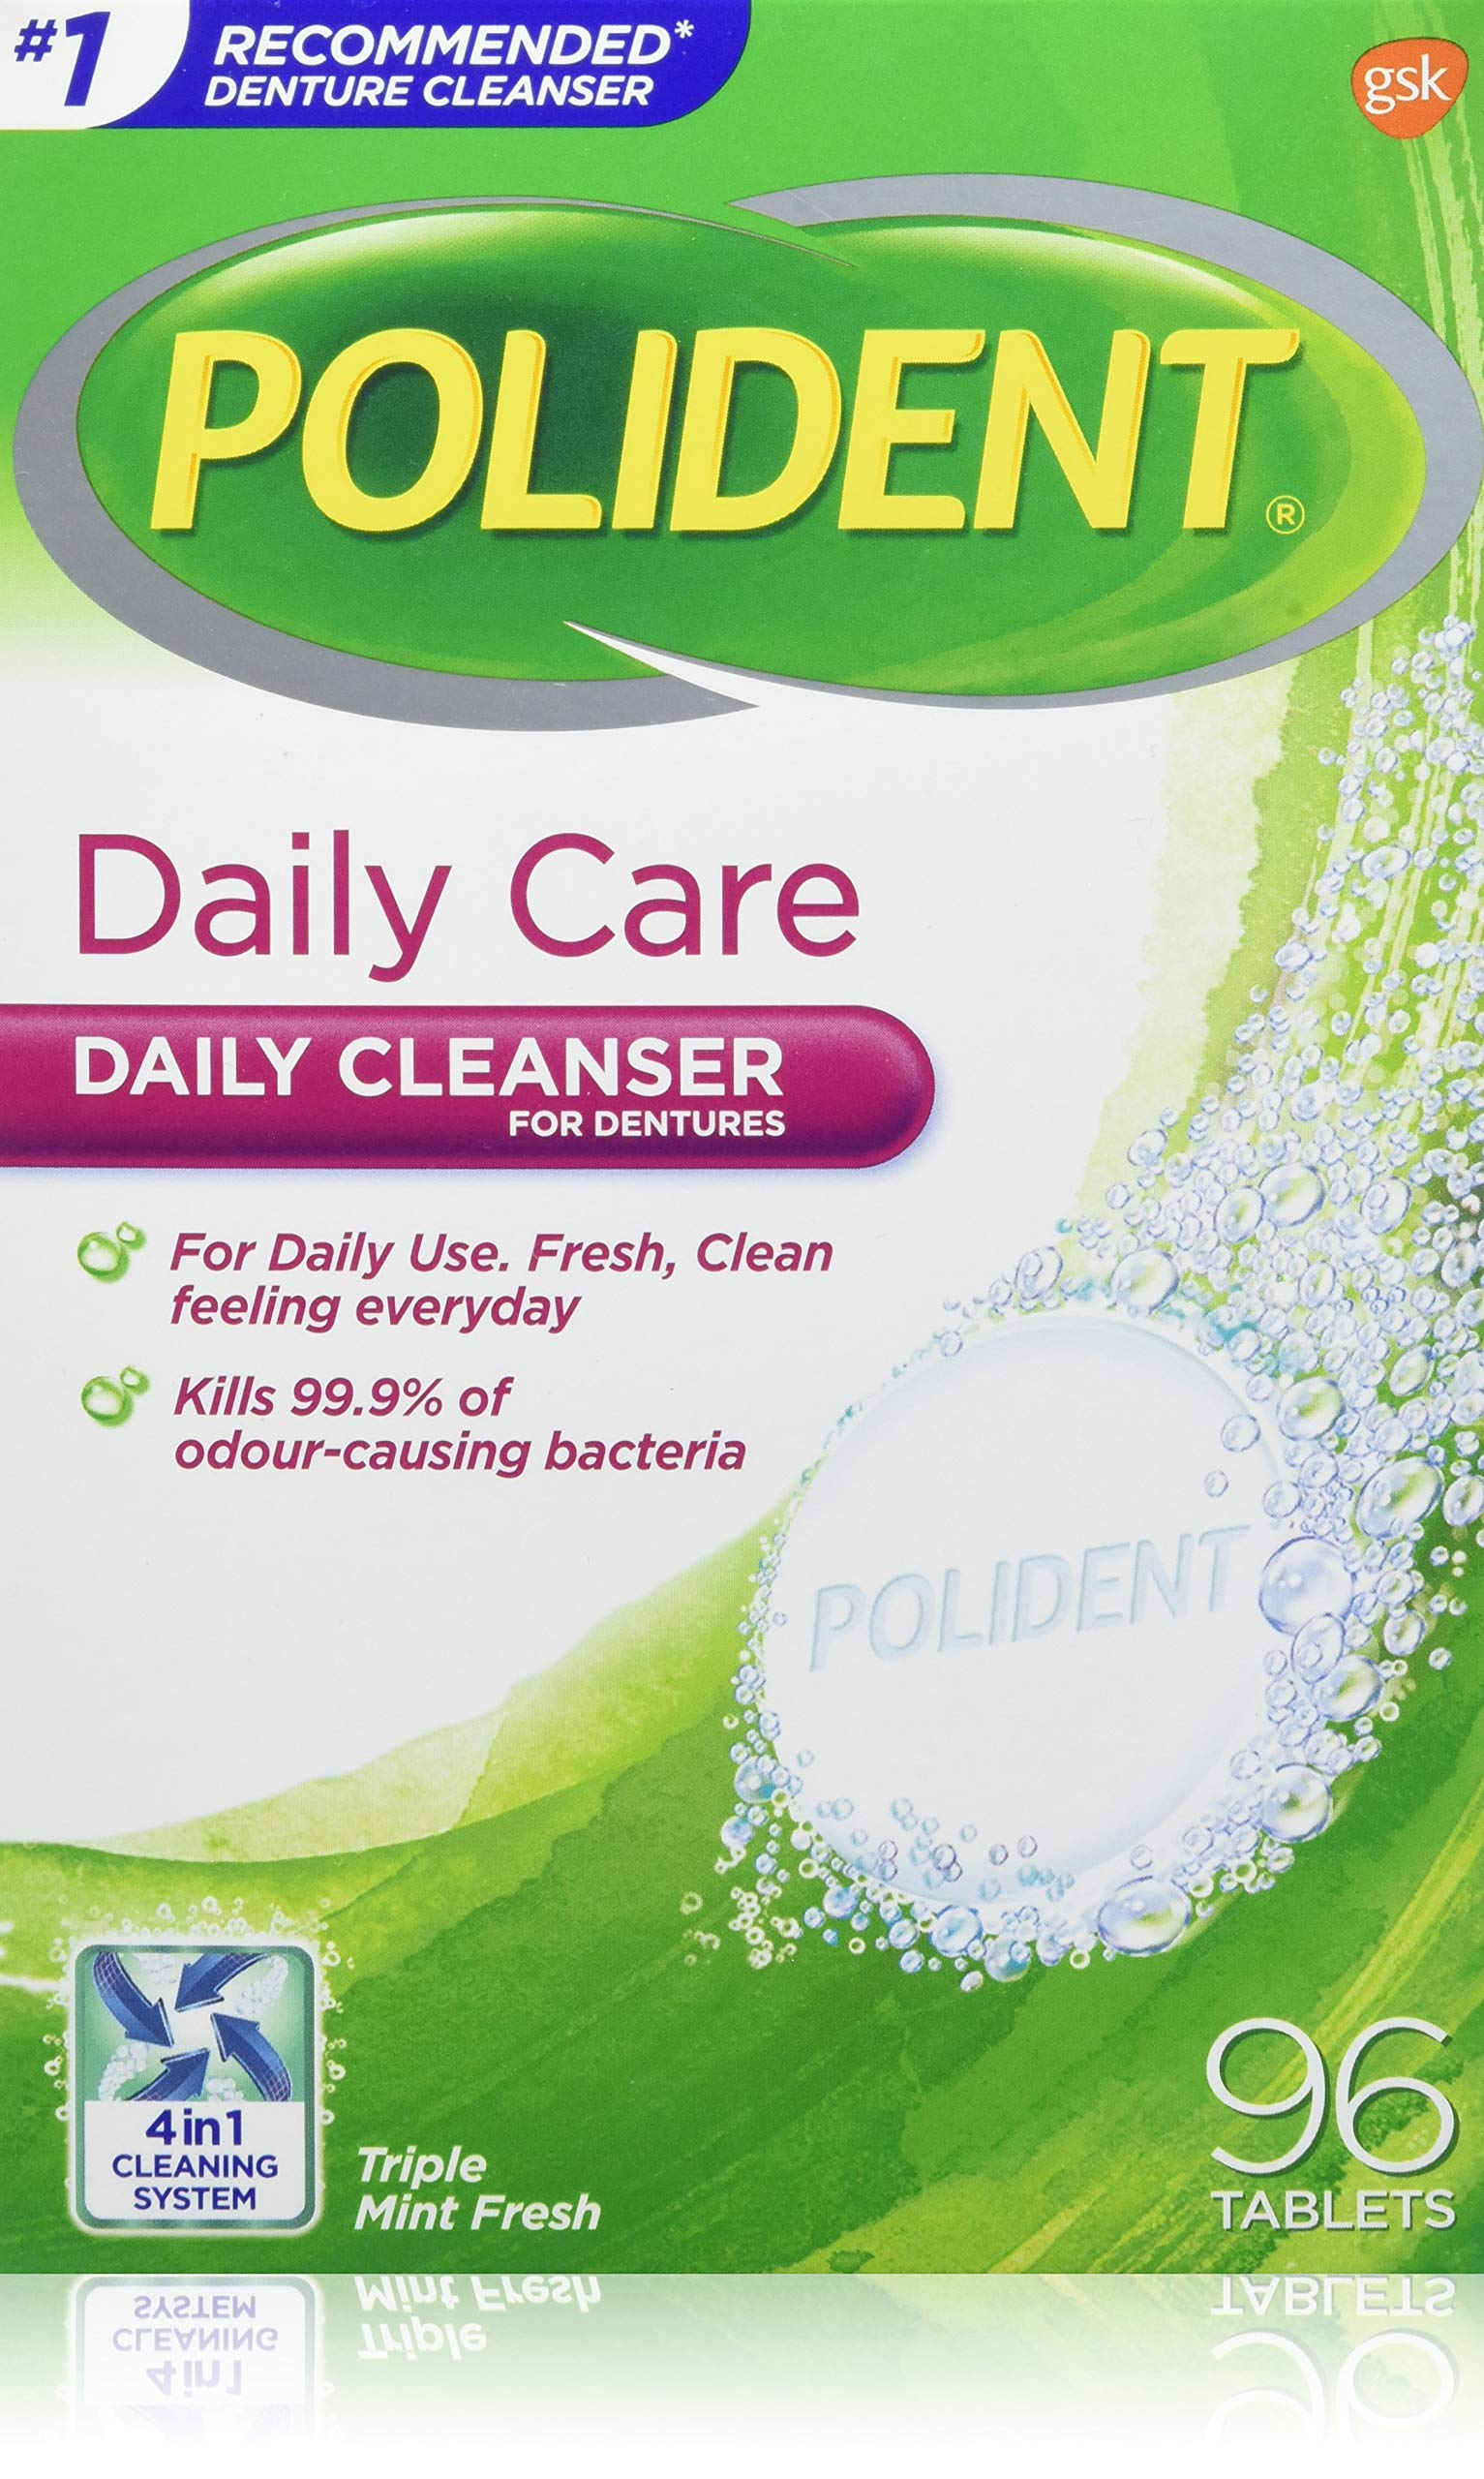 polident daily care instructions